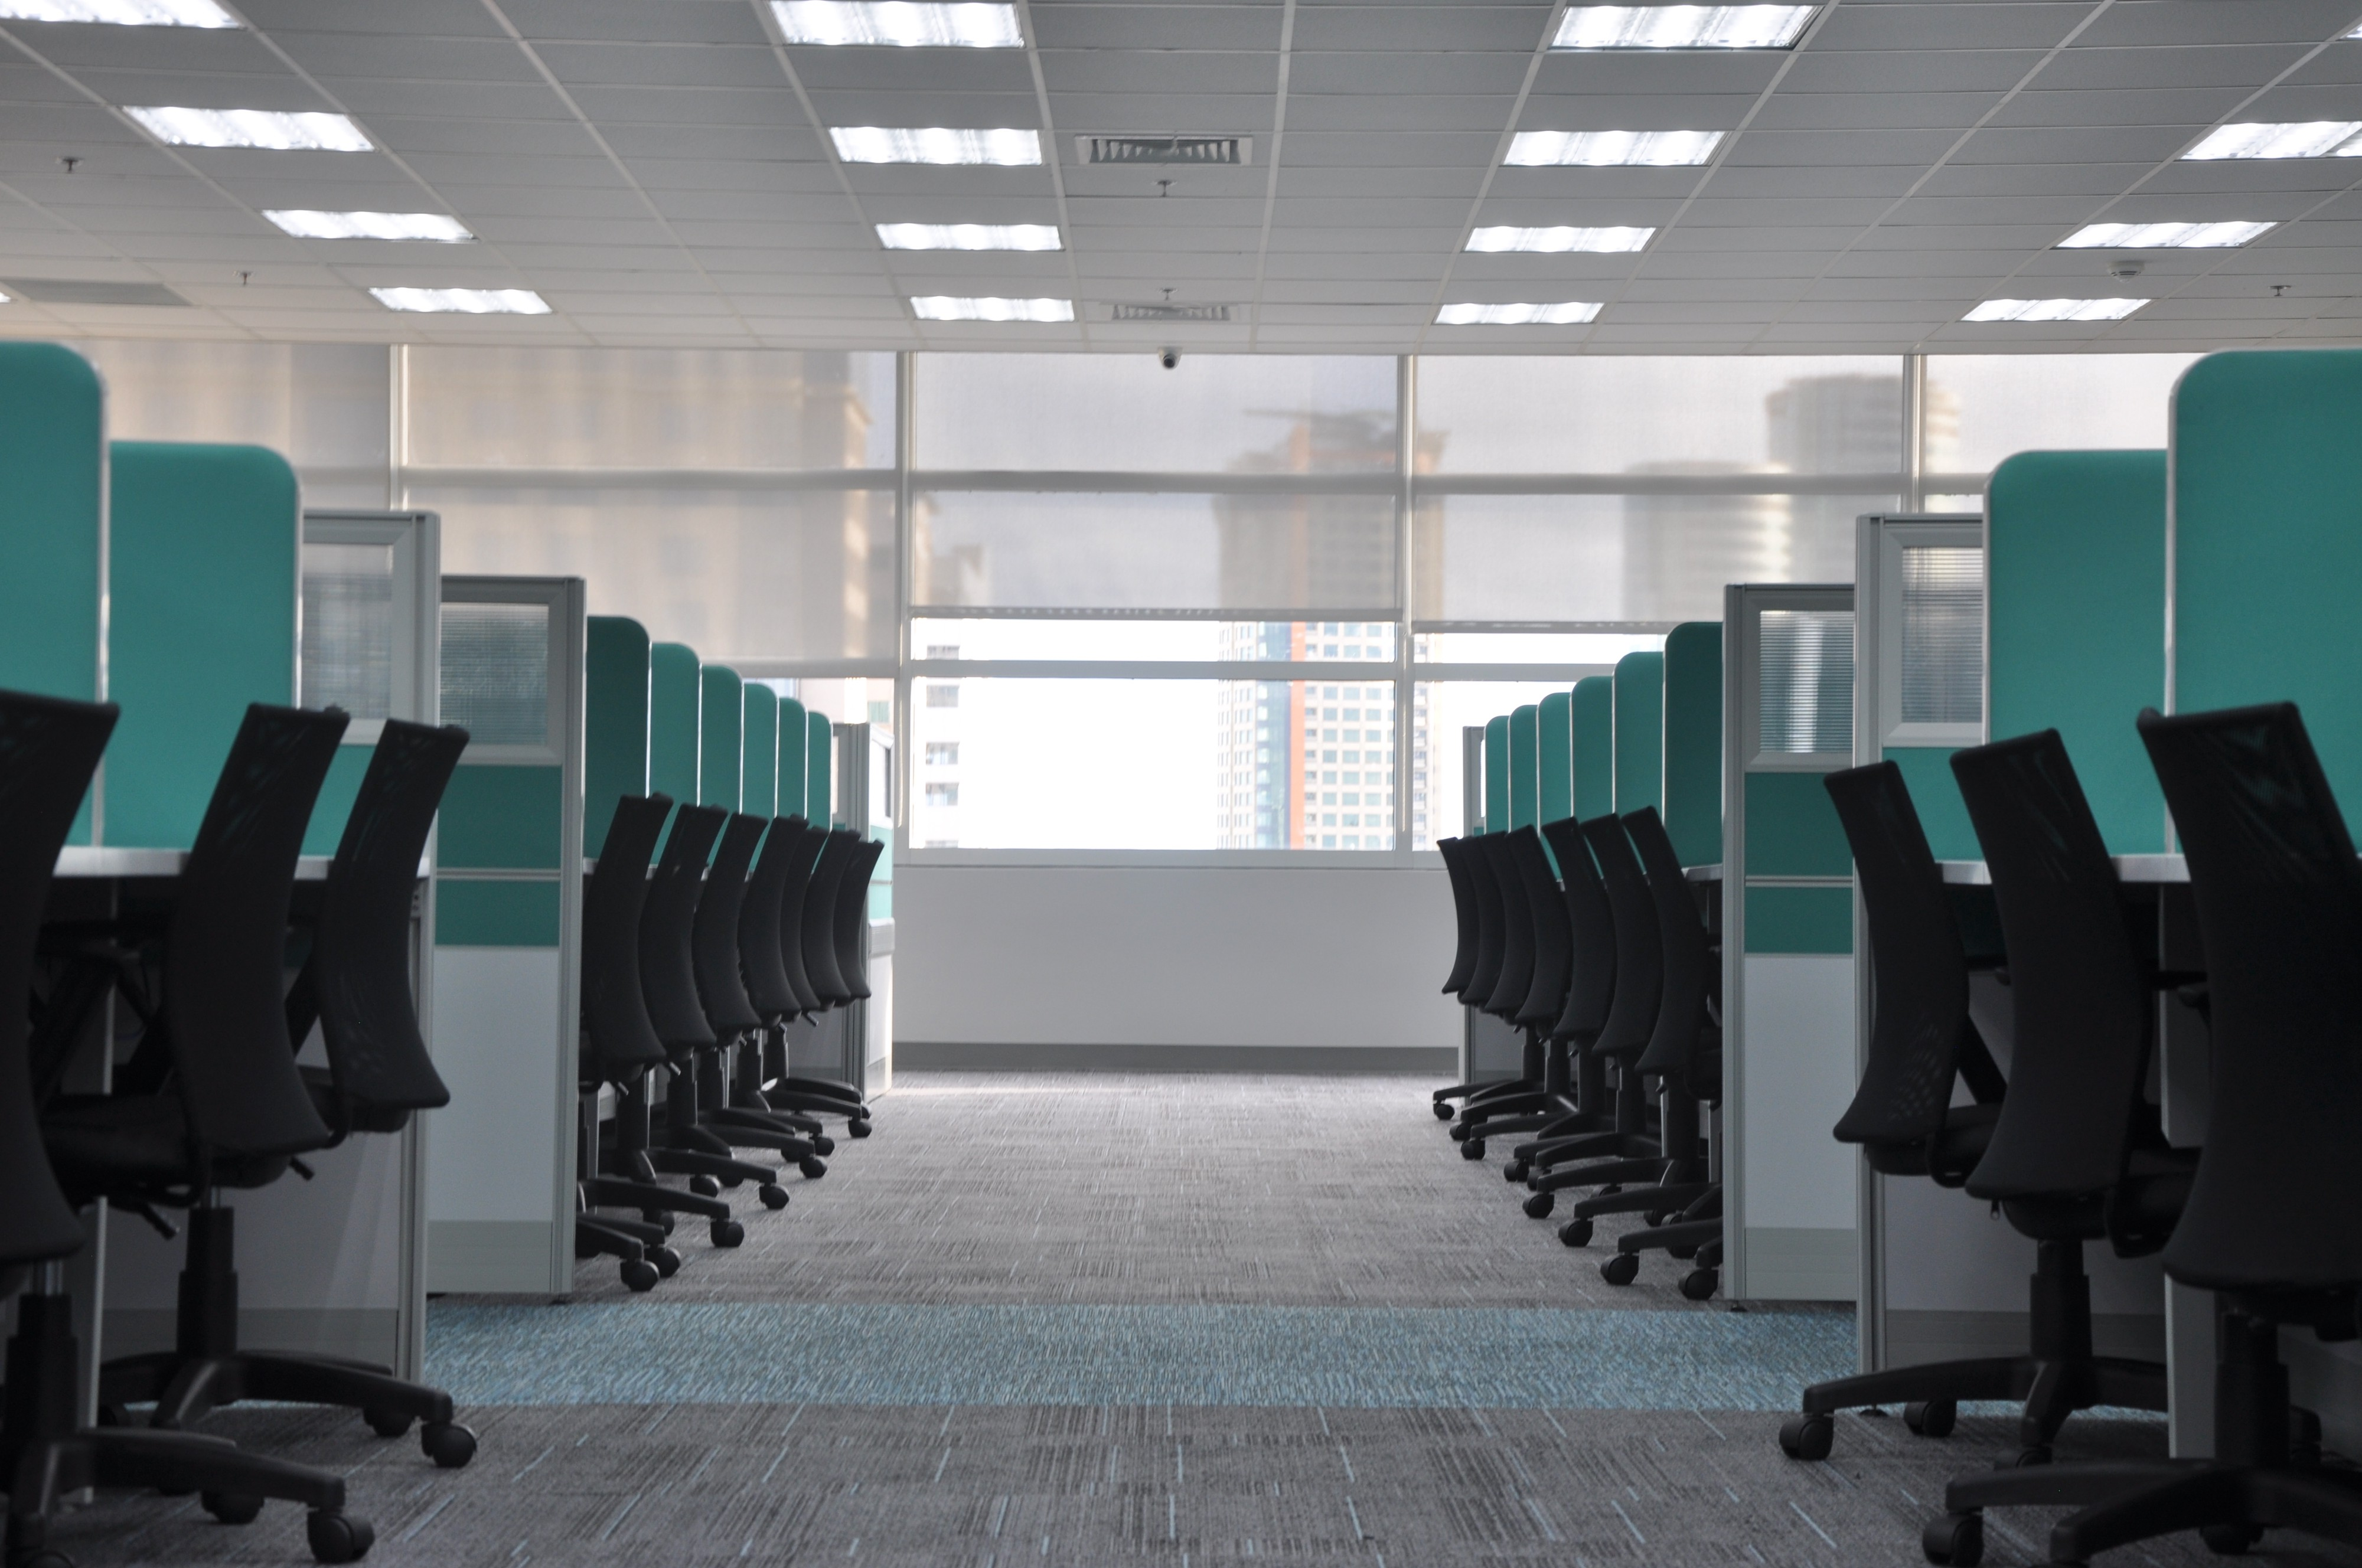 A row of chairs and cubicles inside an office building.